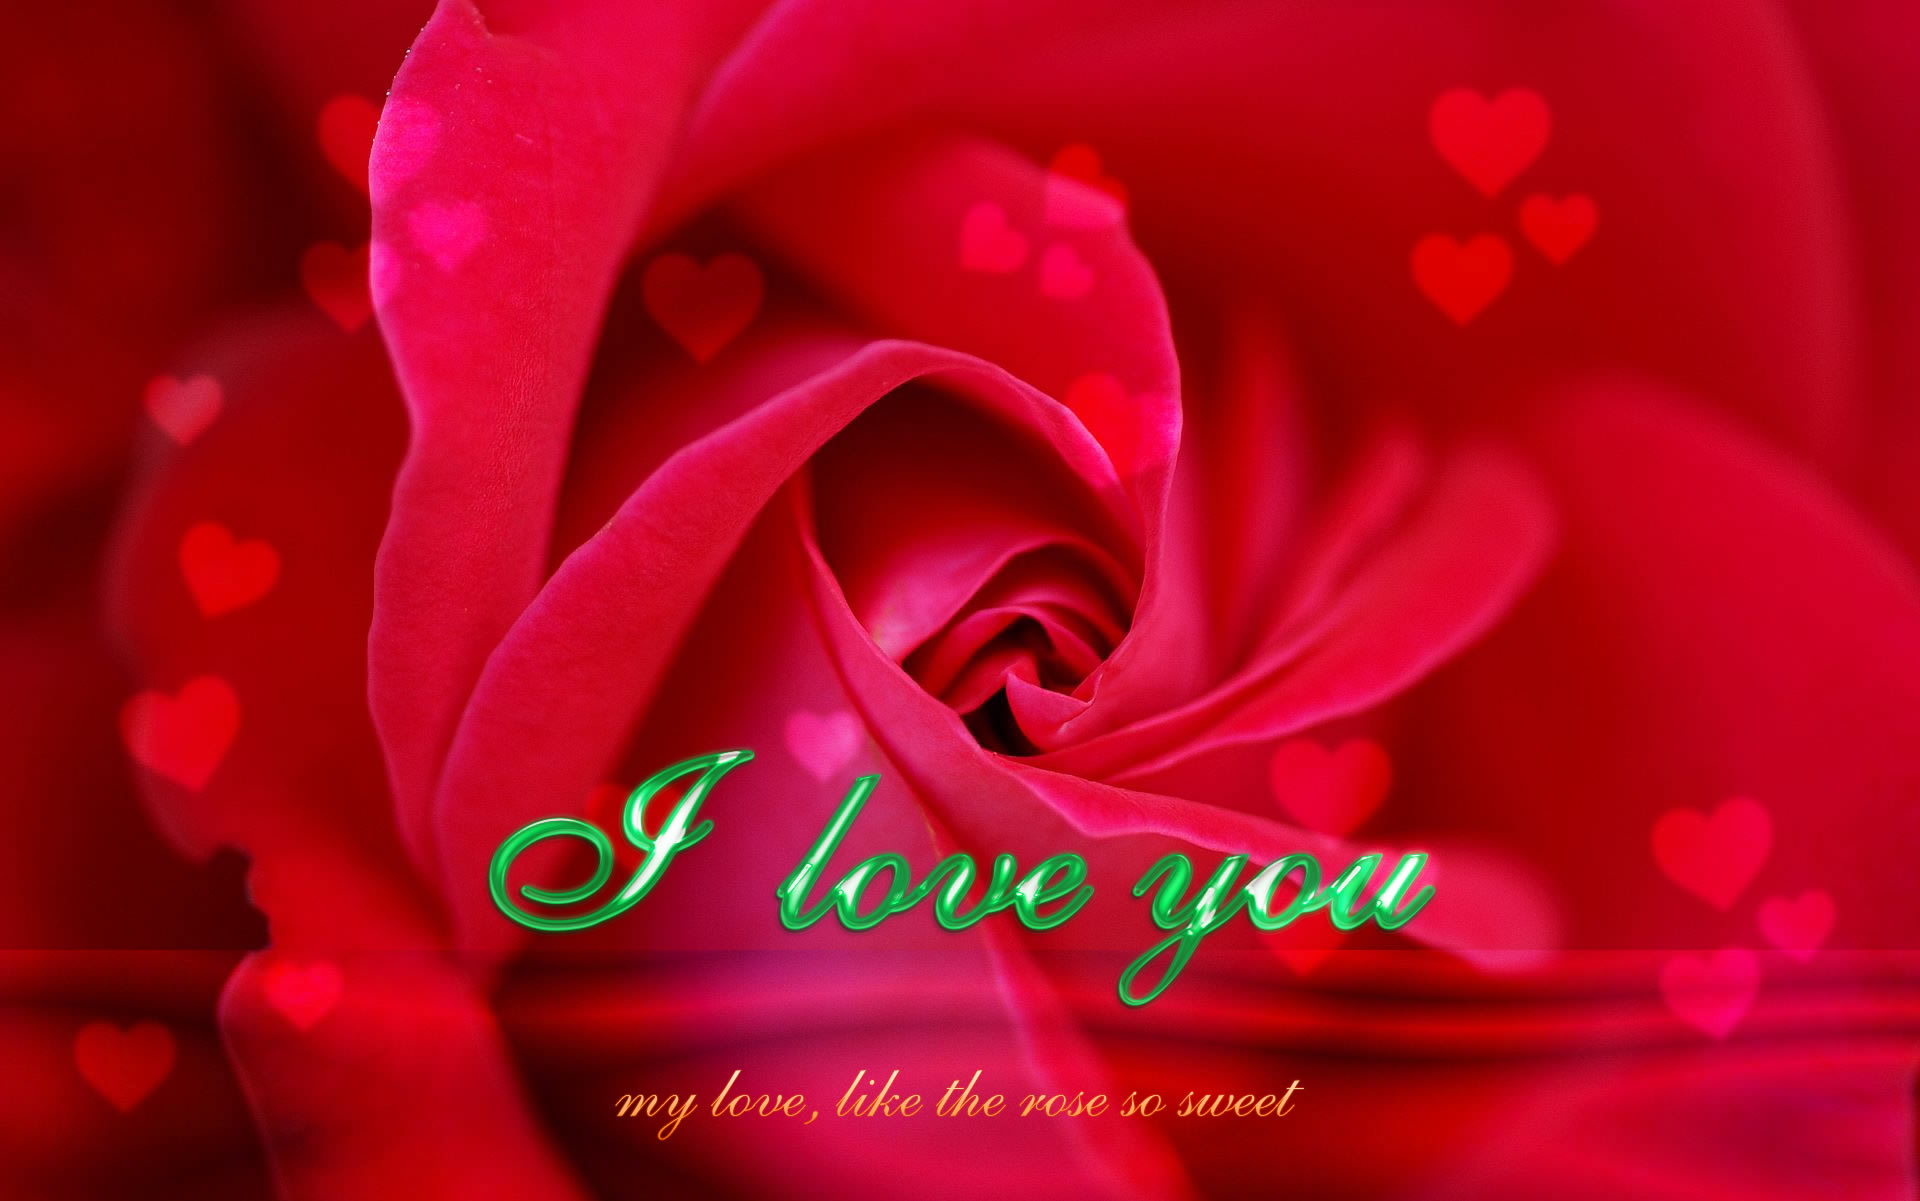 you my love like the rose so sweet a sweet rose ecard photo wallpaper ...